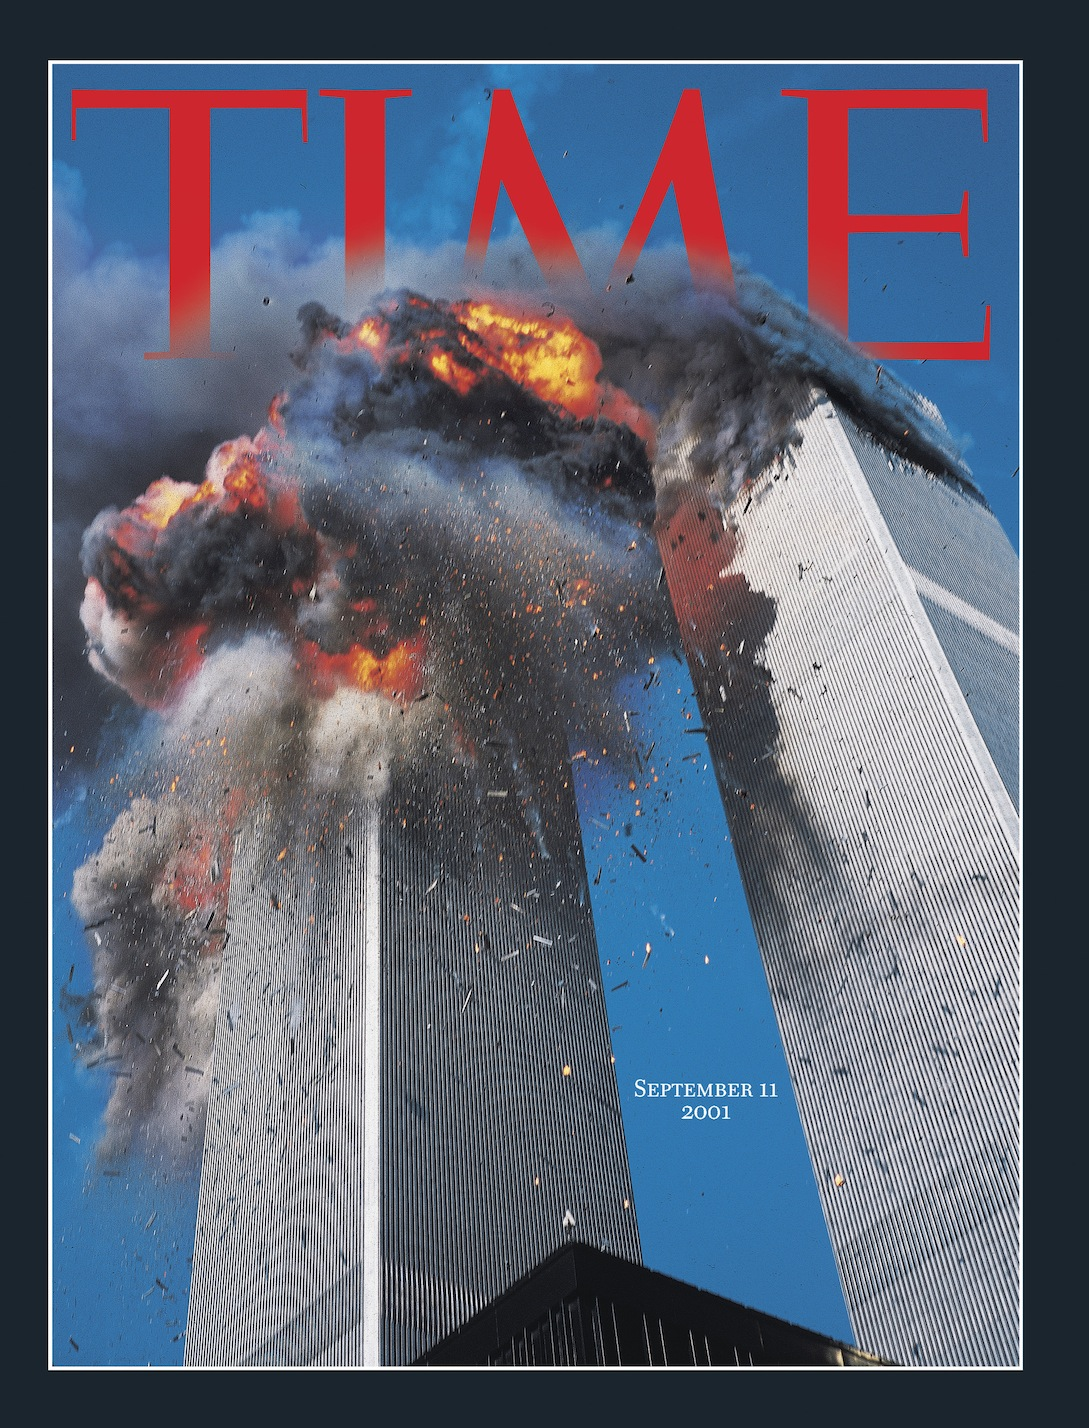 TIME's original 9/11 cover photographed by Lyle Owerko, on September 11, 2001